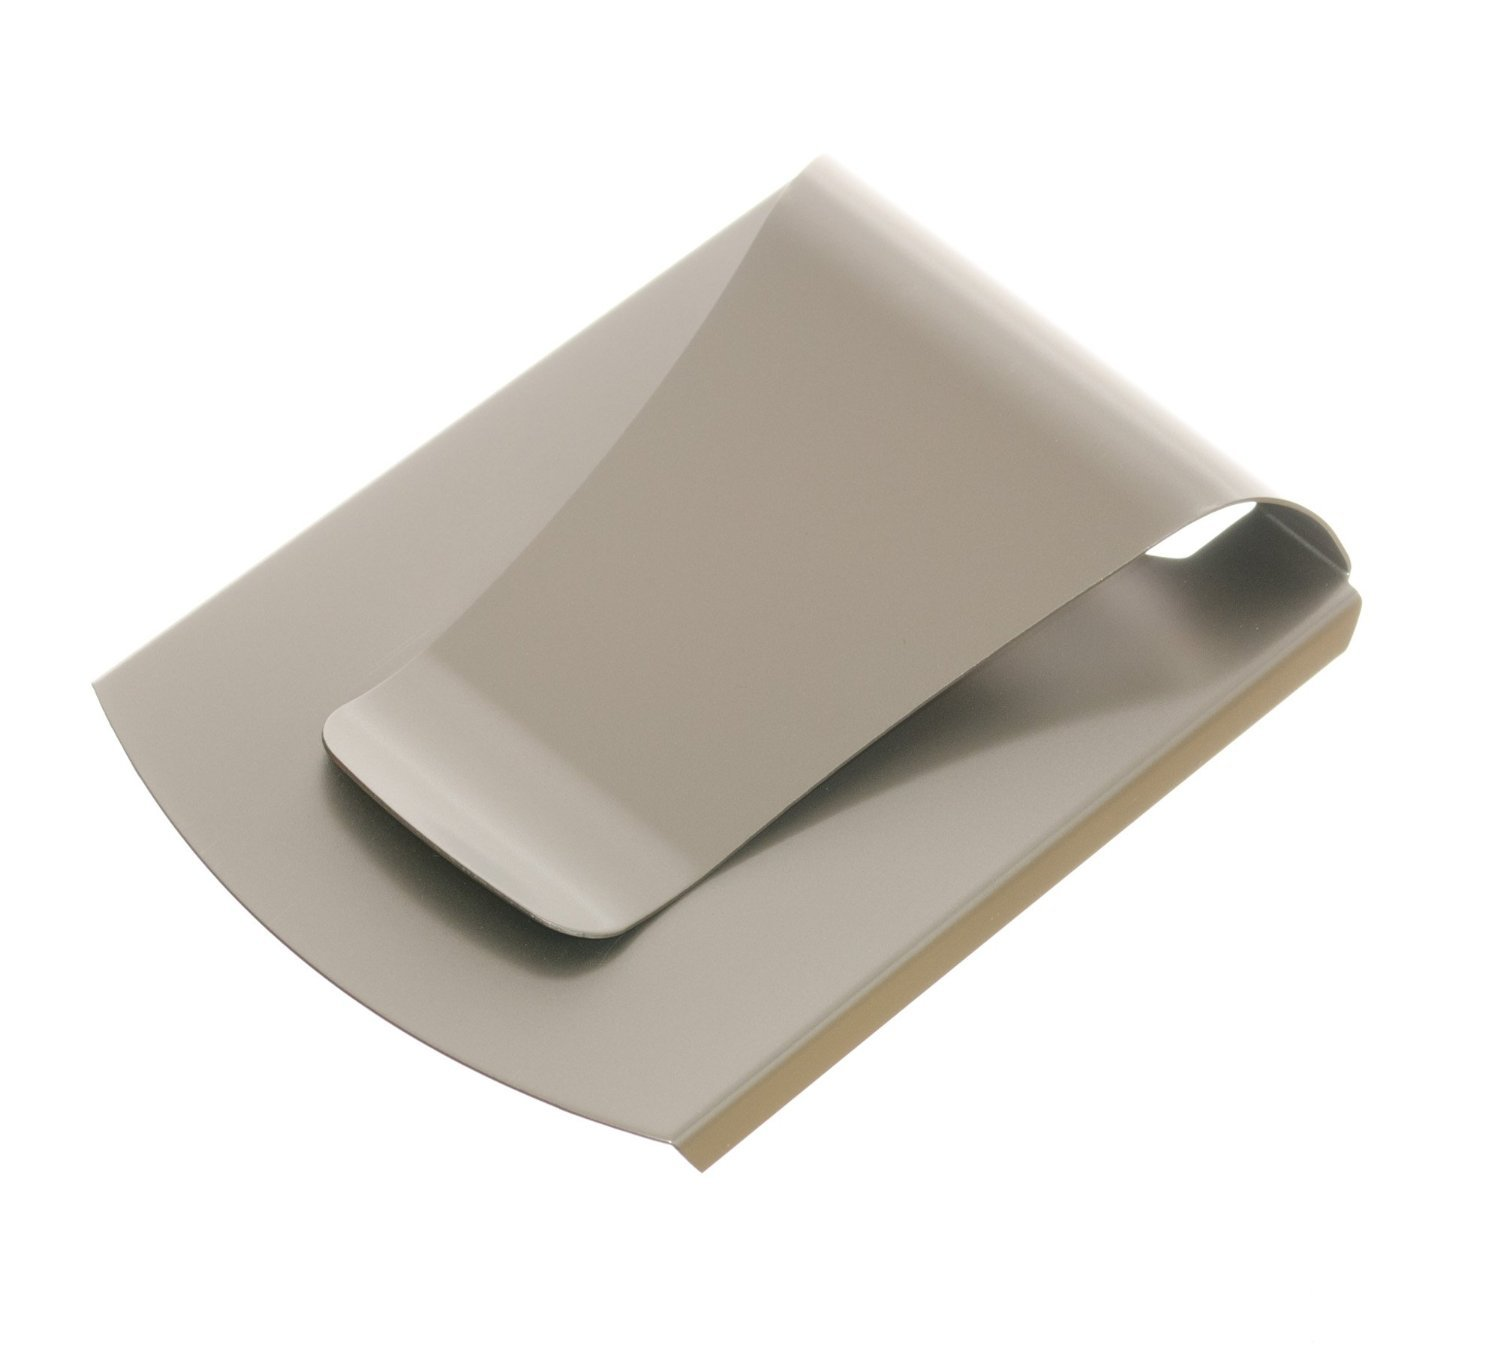 Storus Smart Money Clip-Double Sided Money Clip-Stores Cards on One Side and Cash on The Other Side-Stainless Steel with Titanium Finish (1 Piece per Package) Patented